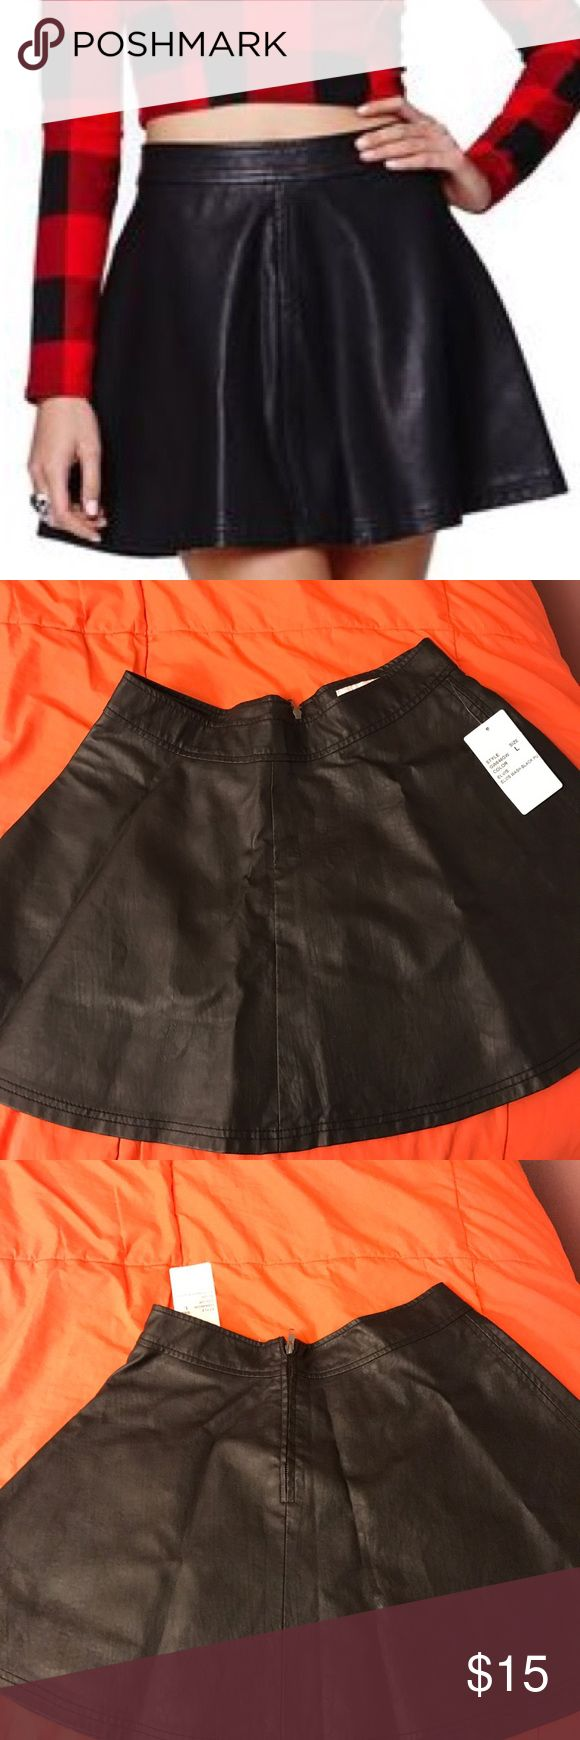 GYPSY WARRIOR Faux Leather Skater Skirt Gypsy Warrior Faux Leather Skater Skirt with back zipper detail. Would look perfect with tights and combat boots. NWT, never worn. Gypsy Warrior Skirts Circle & Skater